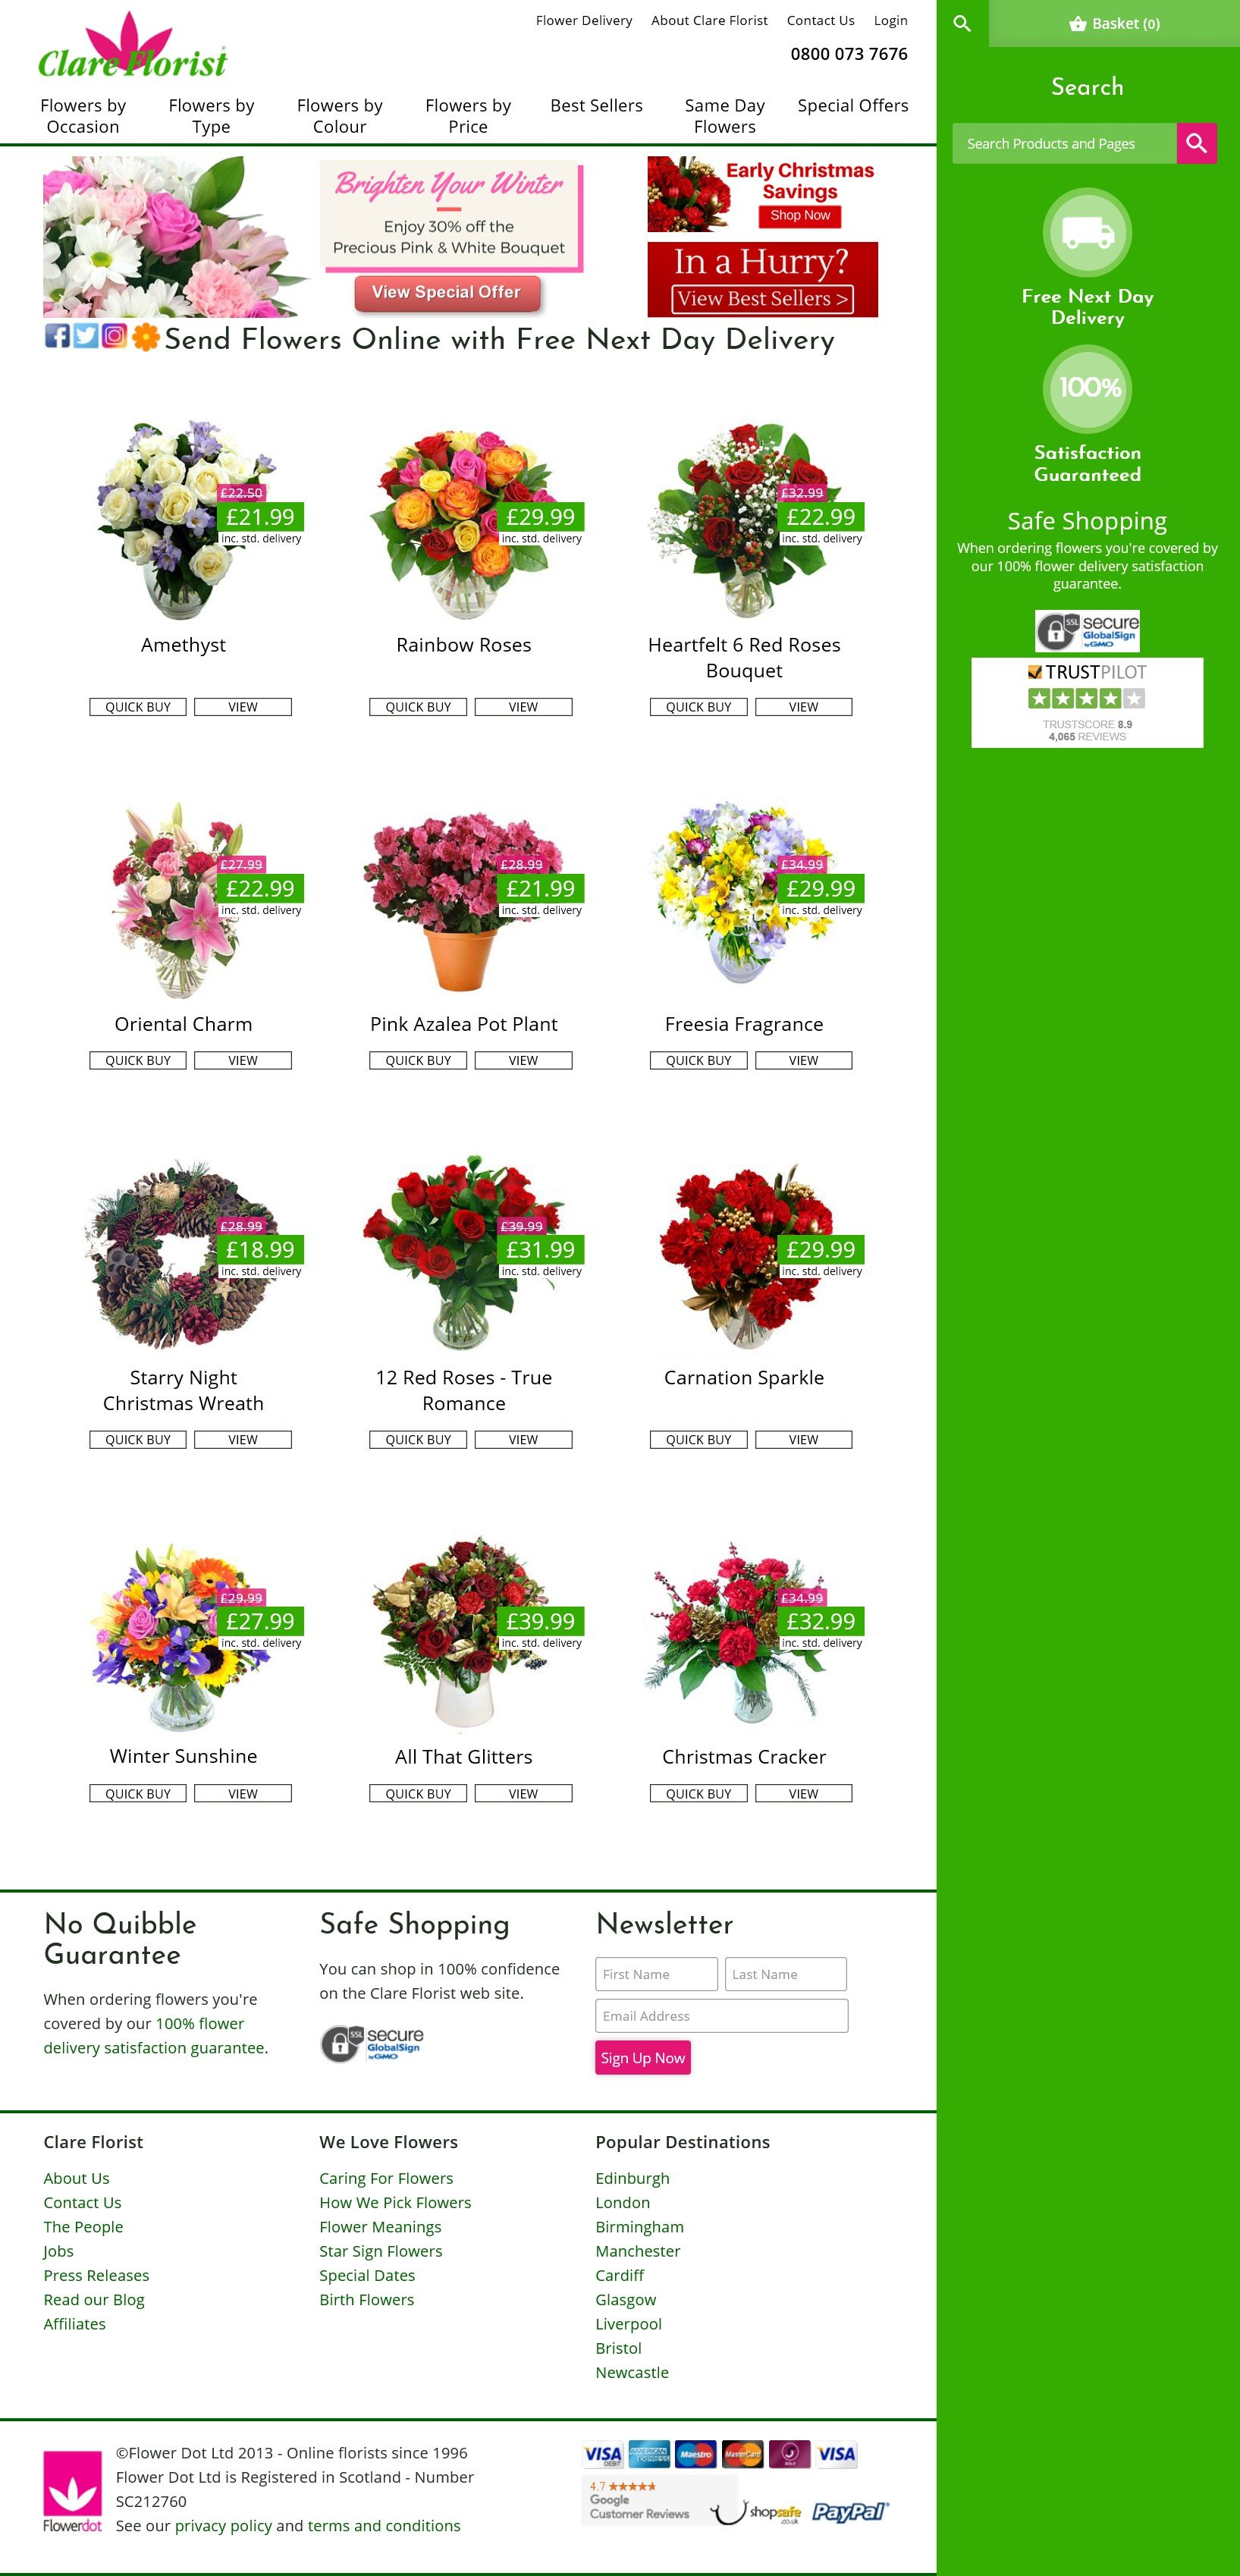 Clare Florist are the No.1 online florist for flower delivery throughout the UK with the perfect flowers to send - whatever the occasion